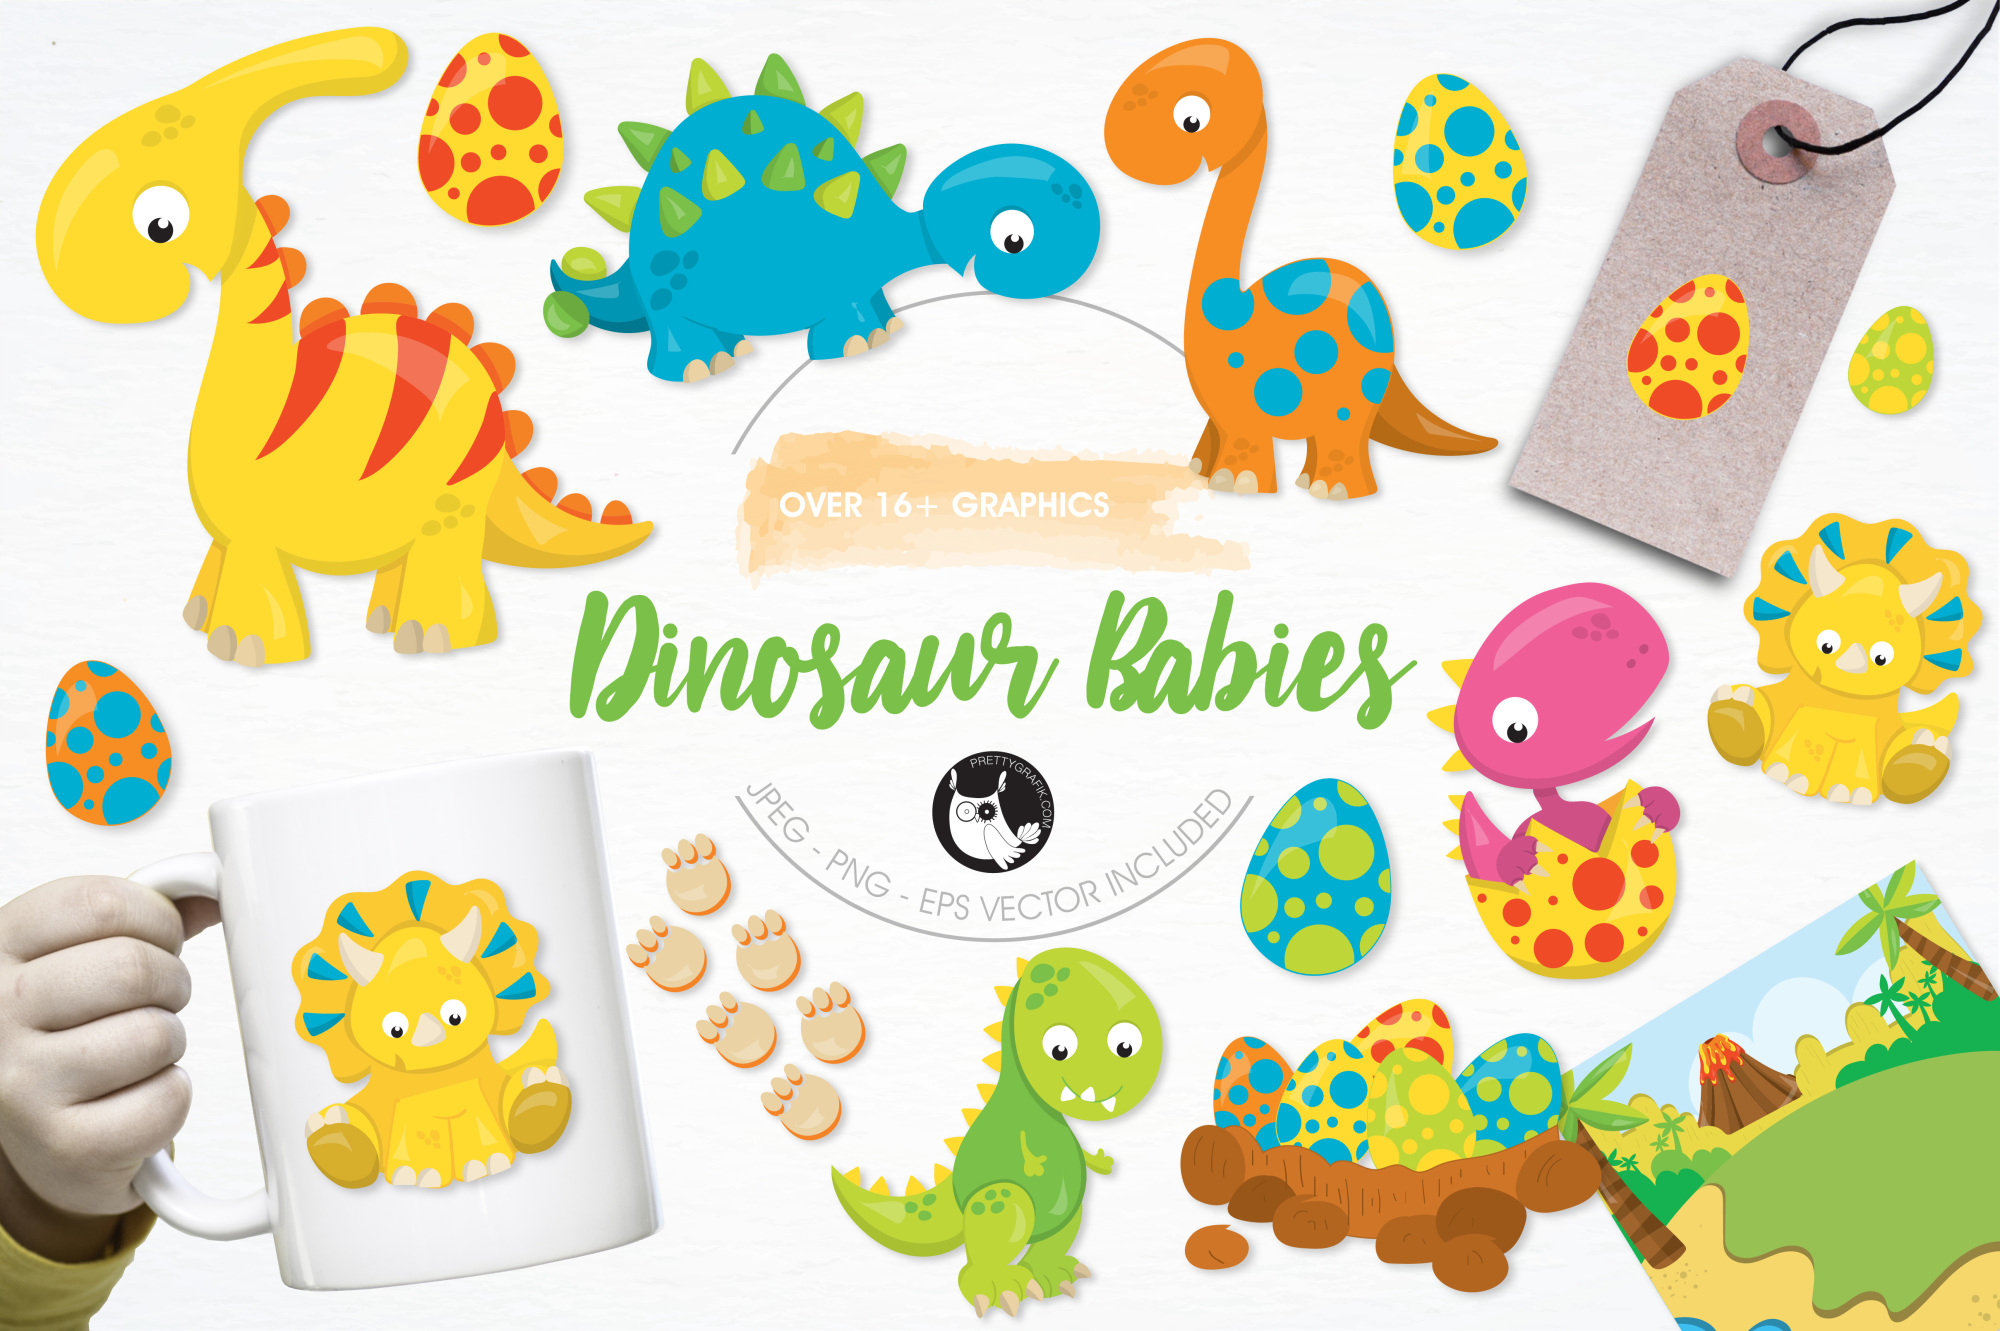 Dinosaur Babies graphics and illustrations example image 1